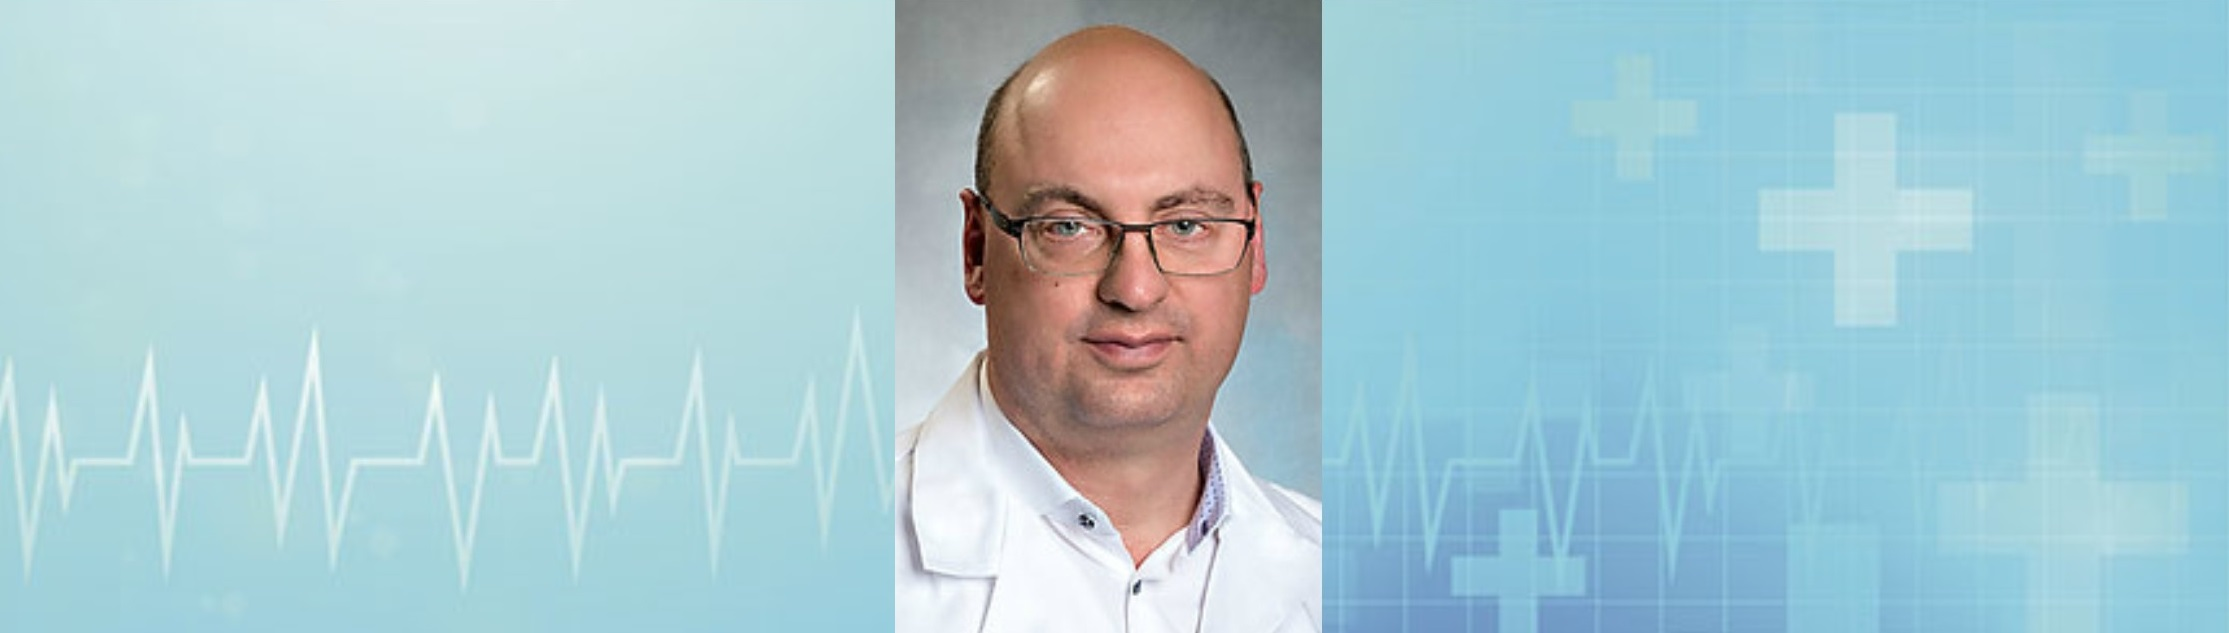 Latterman named Chief of Sports Medicine Service and